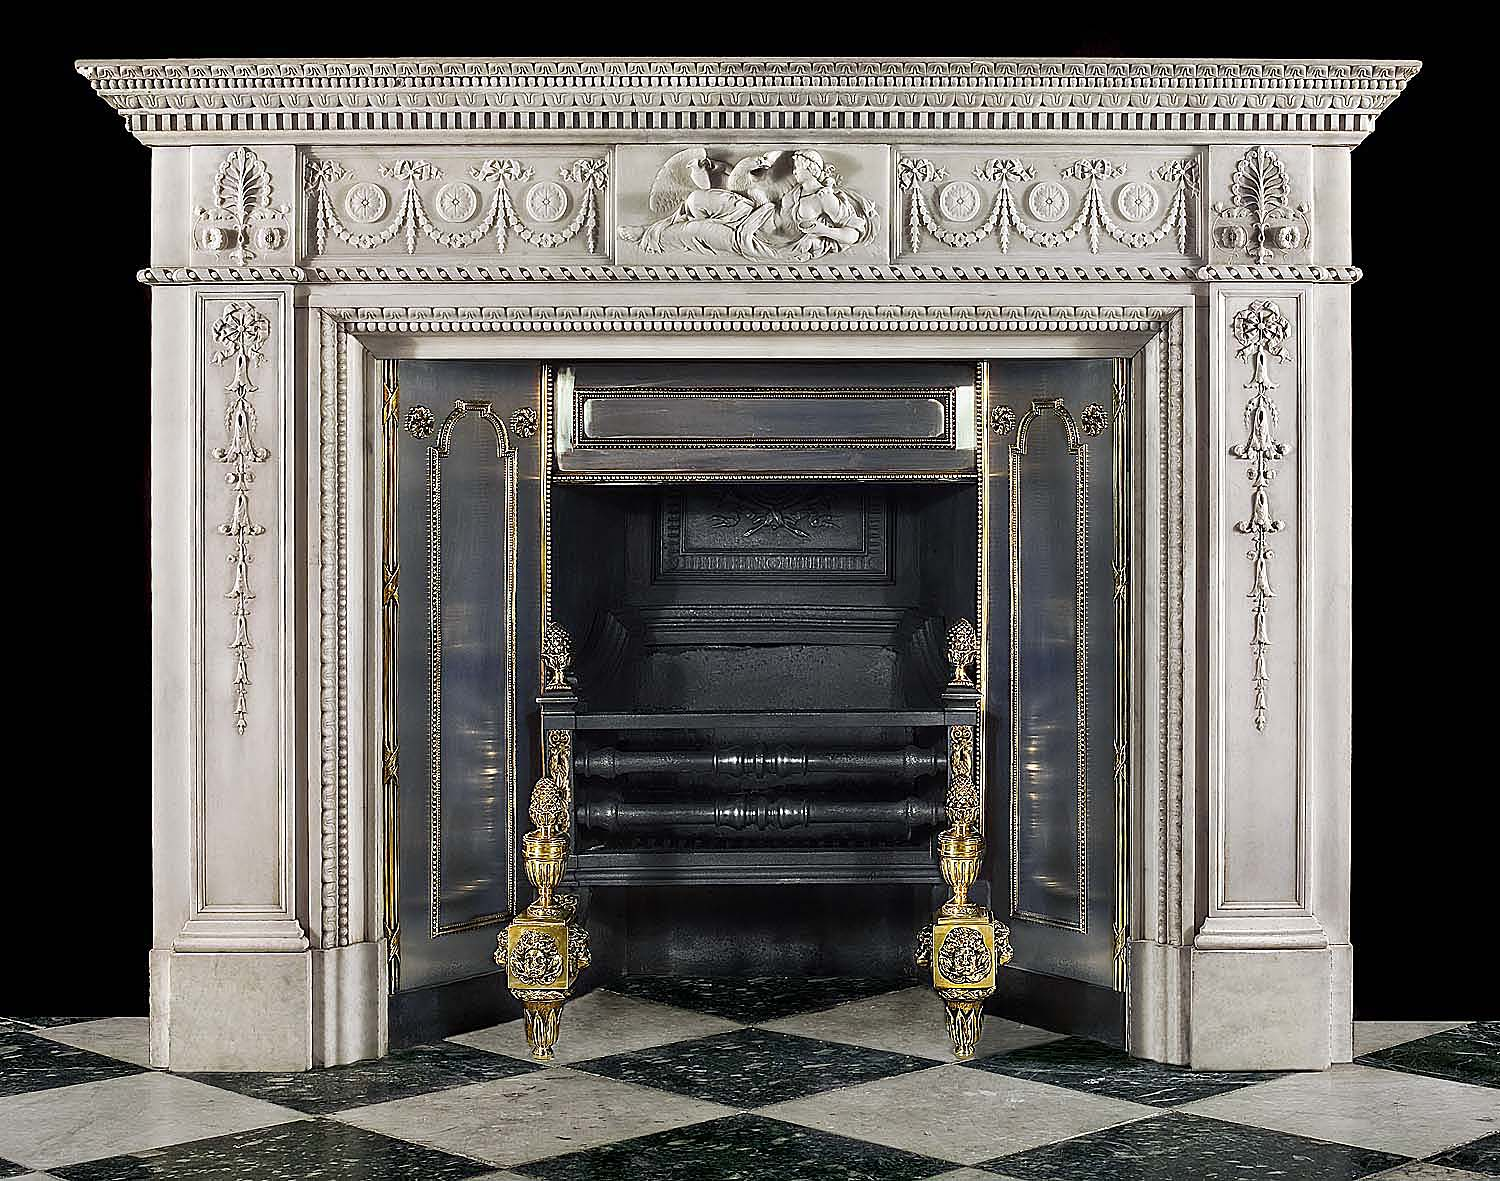 A fine statuary marble antique Georgian fireplace mantel